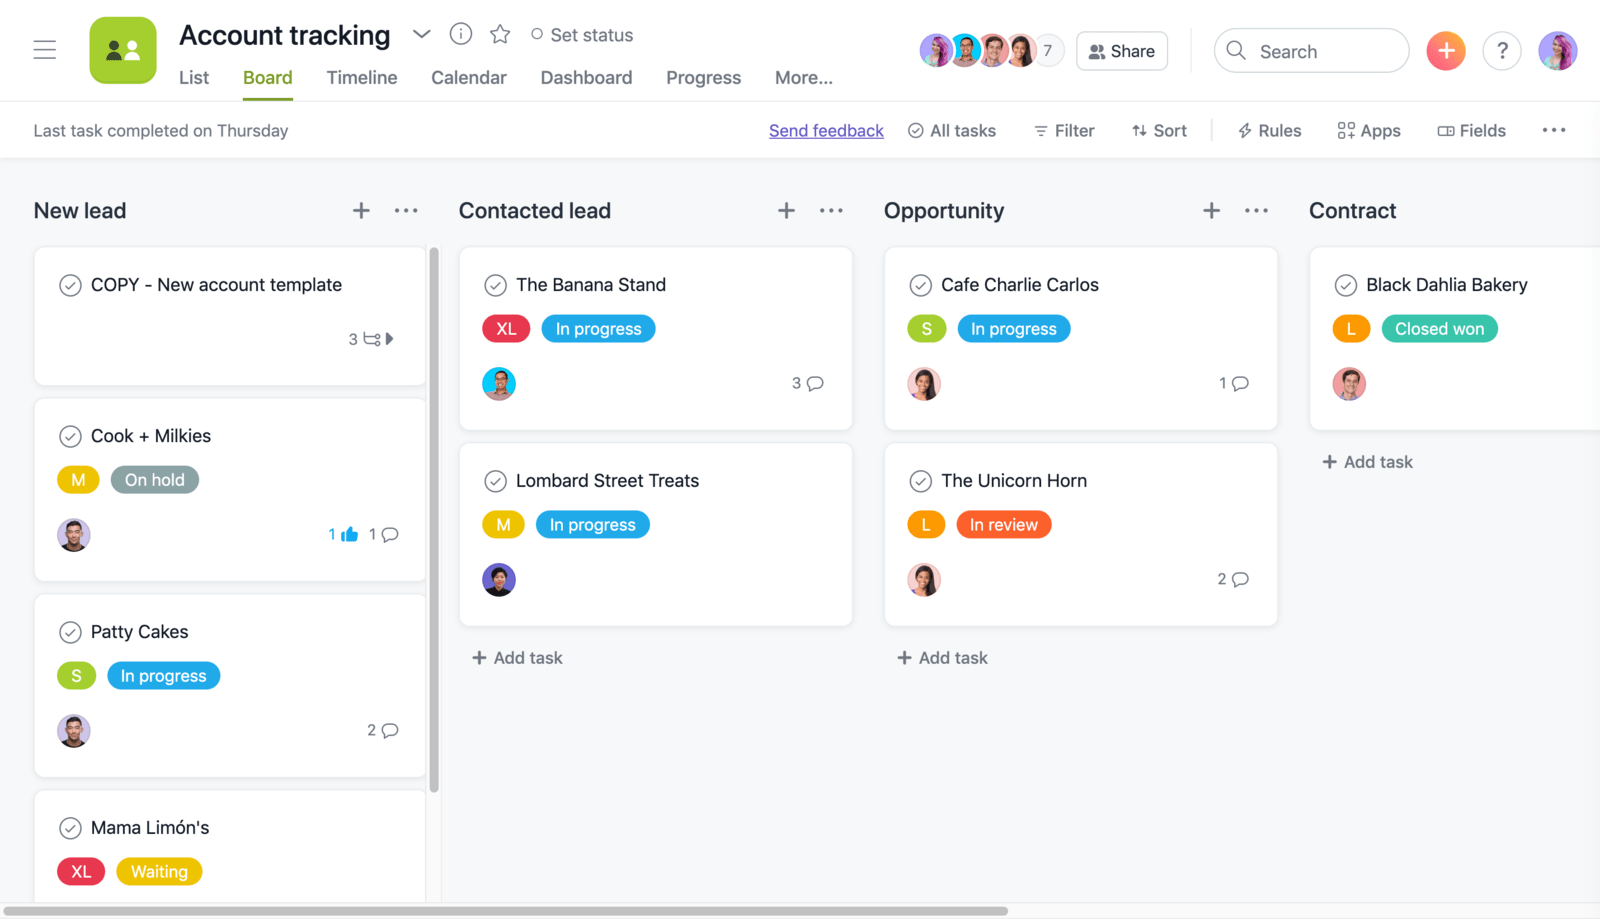 SCREENSHOT of Asana pipeline project in Boards view with columns for account opportunity progress